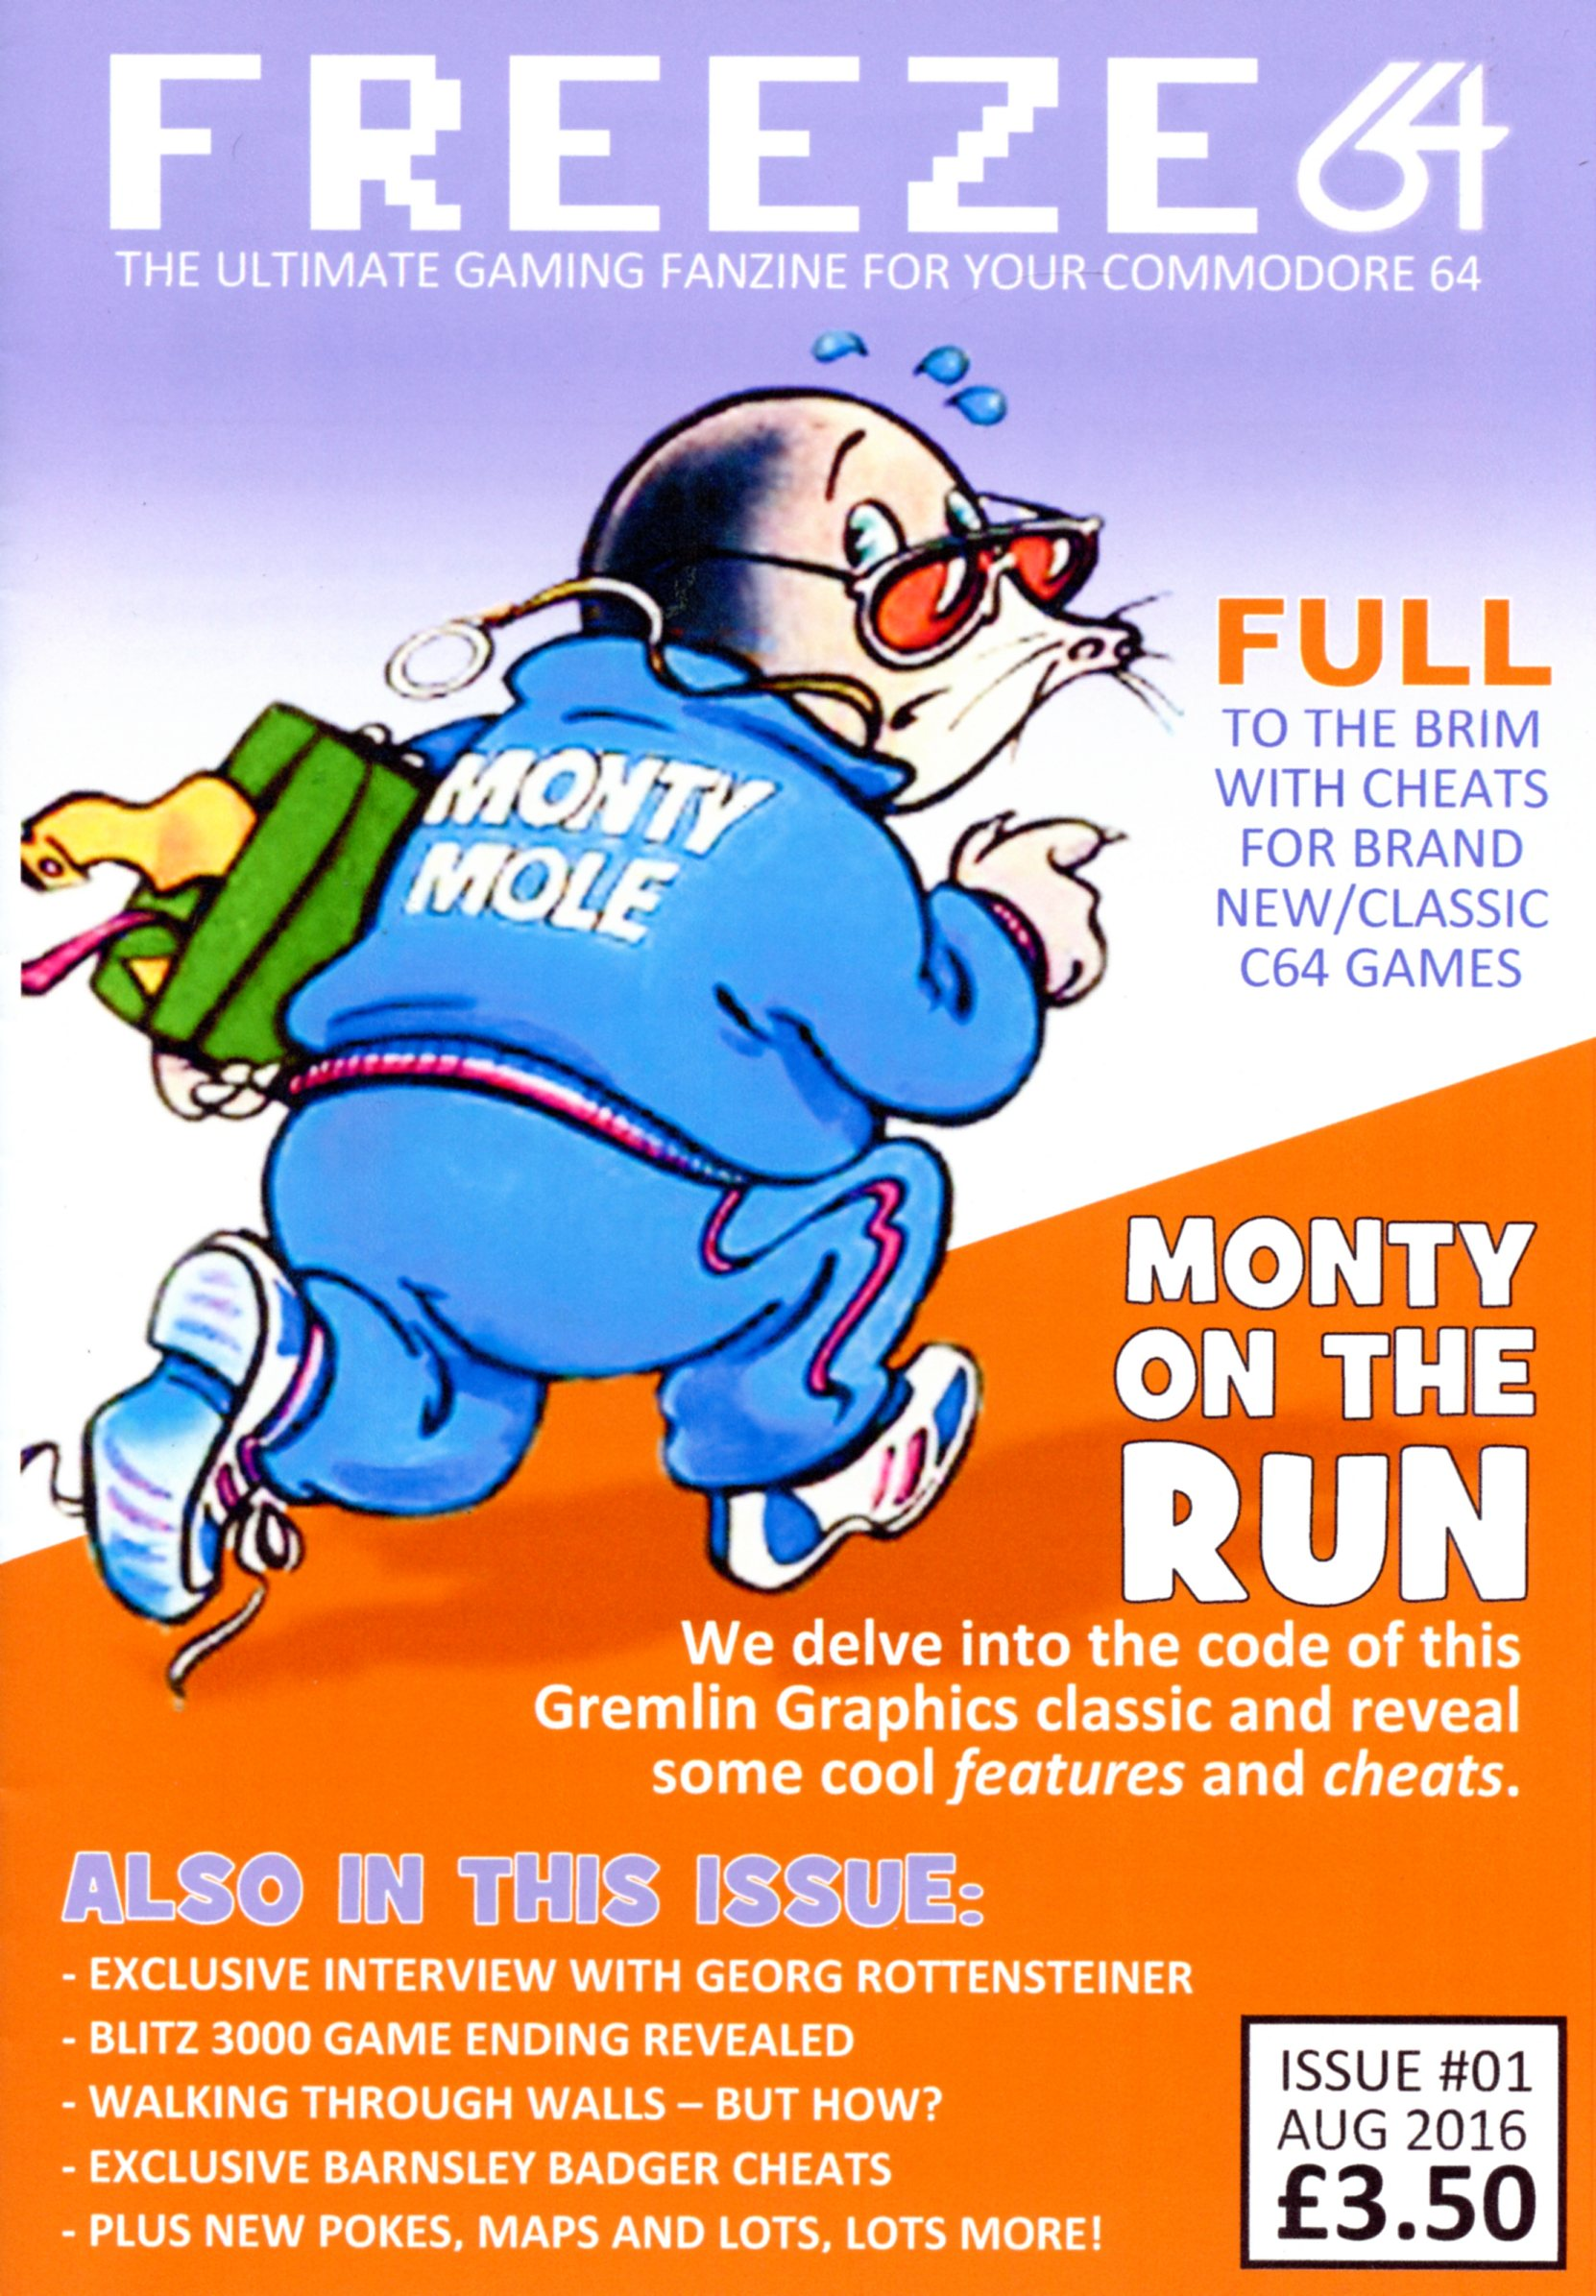 Freeze64 Fanzine (@C64_endings) – Issue 1